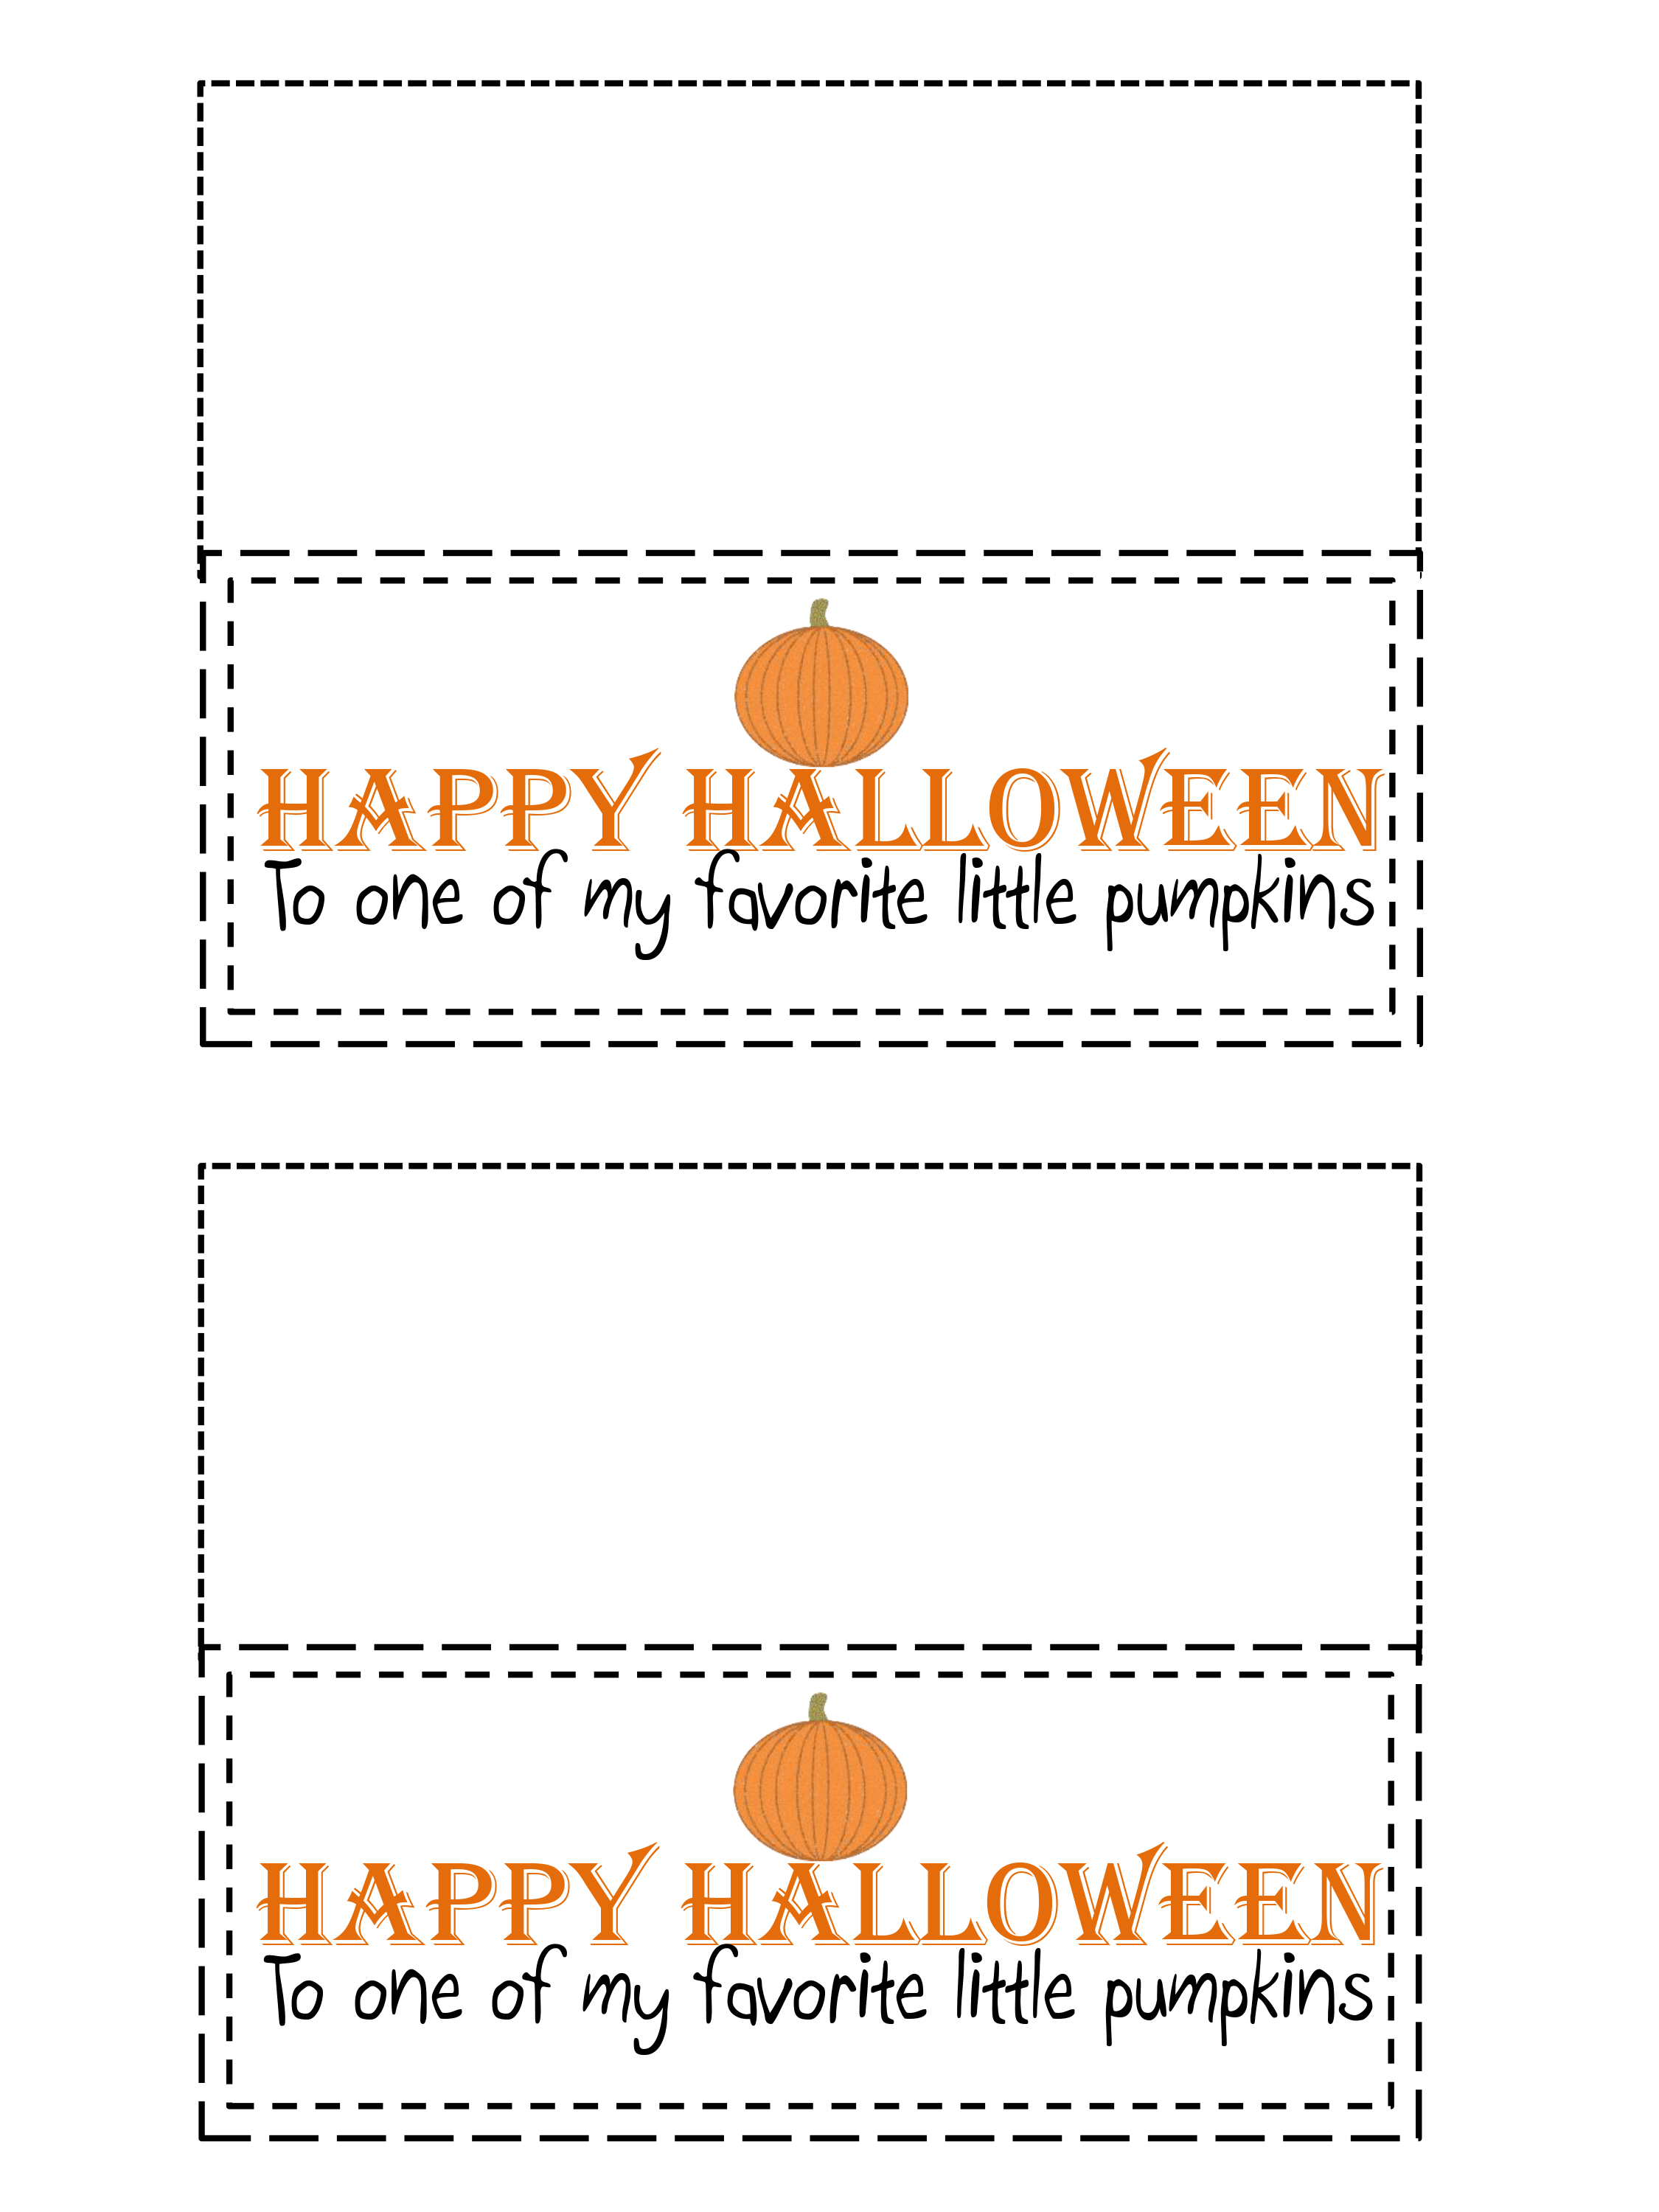 Easy Halloween Lunch Box Surprise FREE Printable - sixtimemommy.com